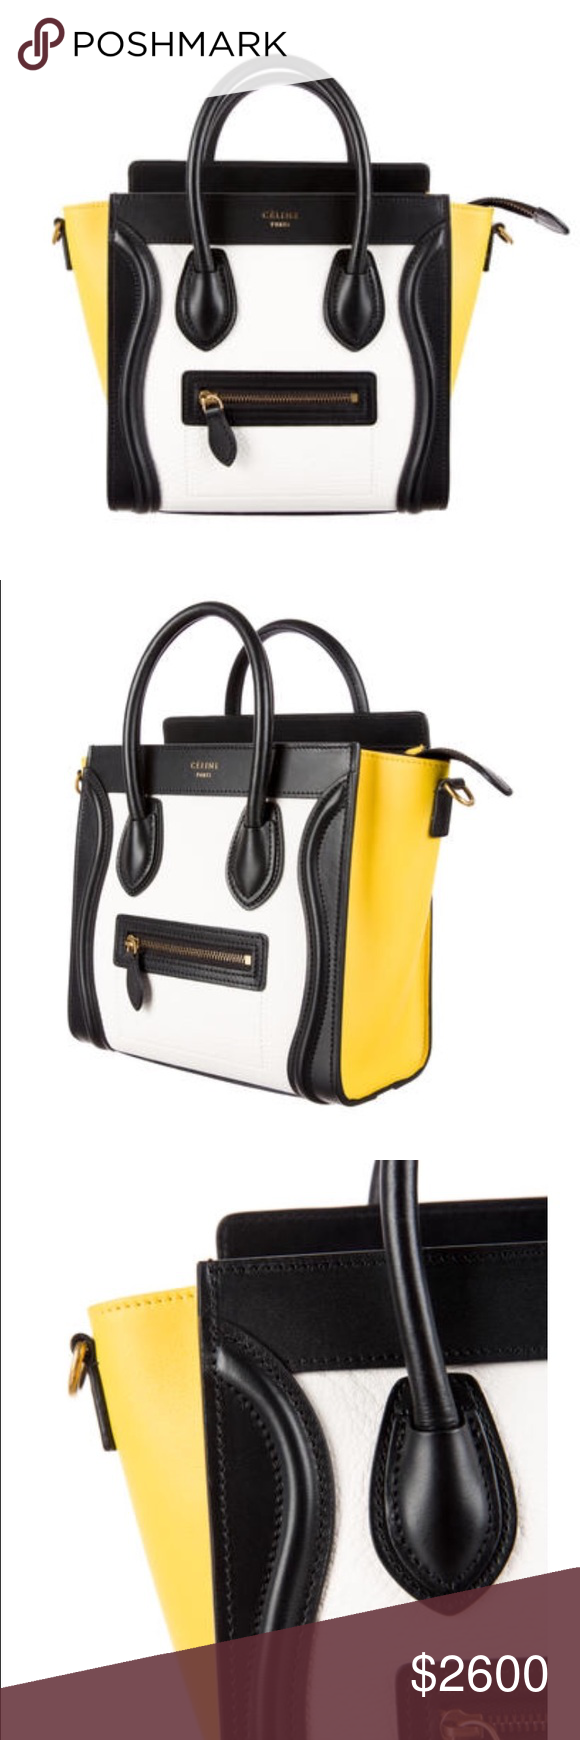 f360a100be Gold Hardware · Shoulder Strap · Dust Bag · Purses · Celine nano luggage  tricolor White